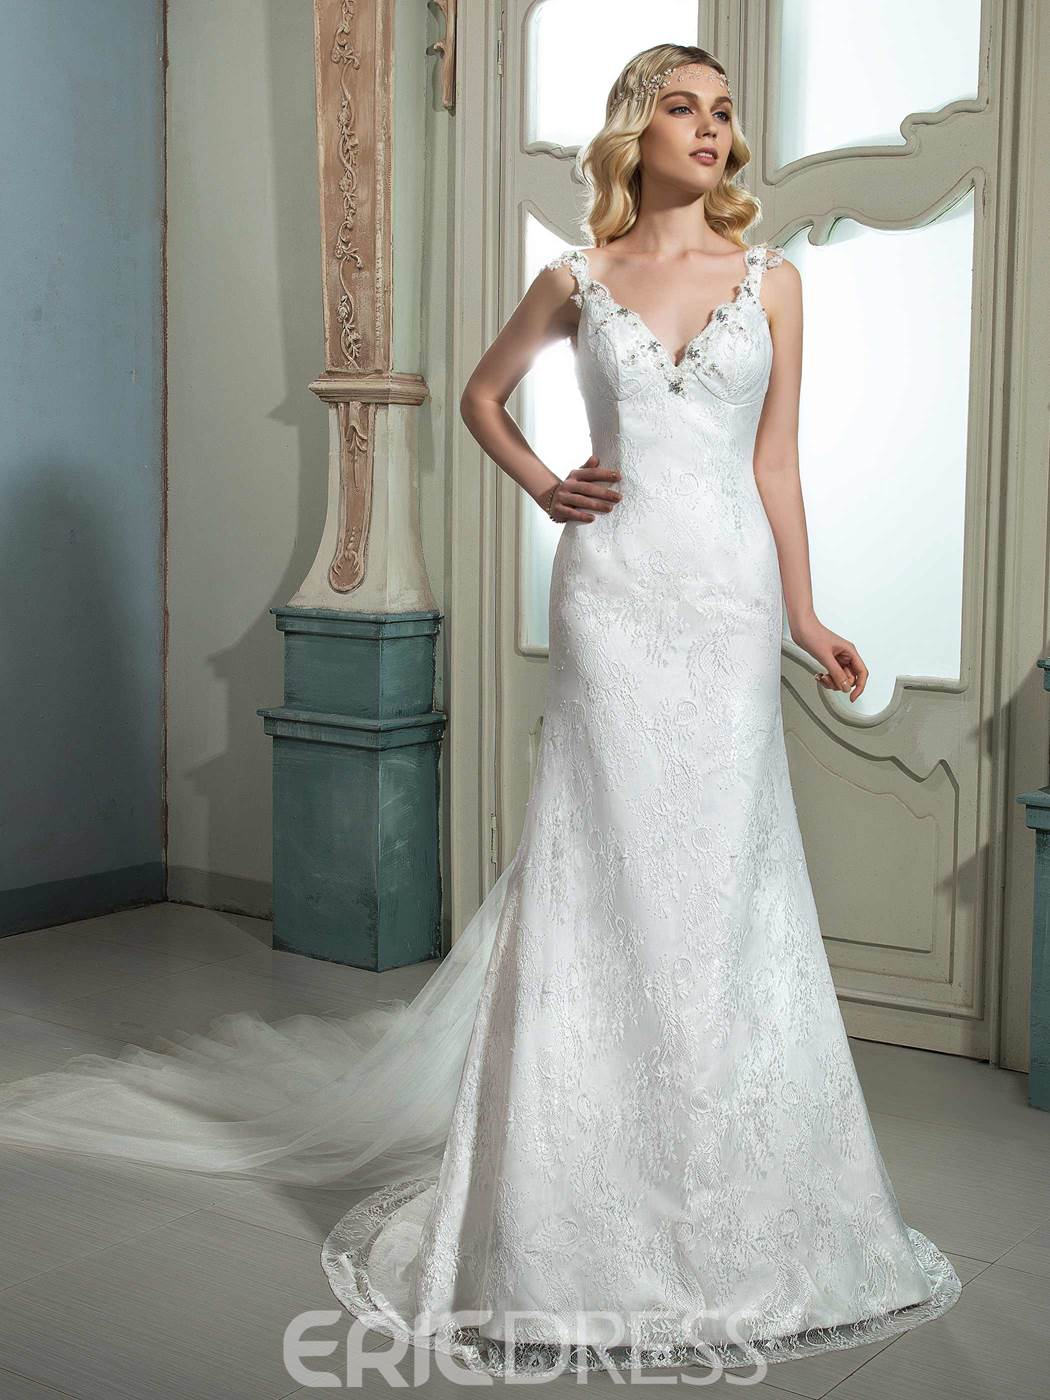 Ericdress Charming Beaded V Neck Backless Lace Wedding Dress ...